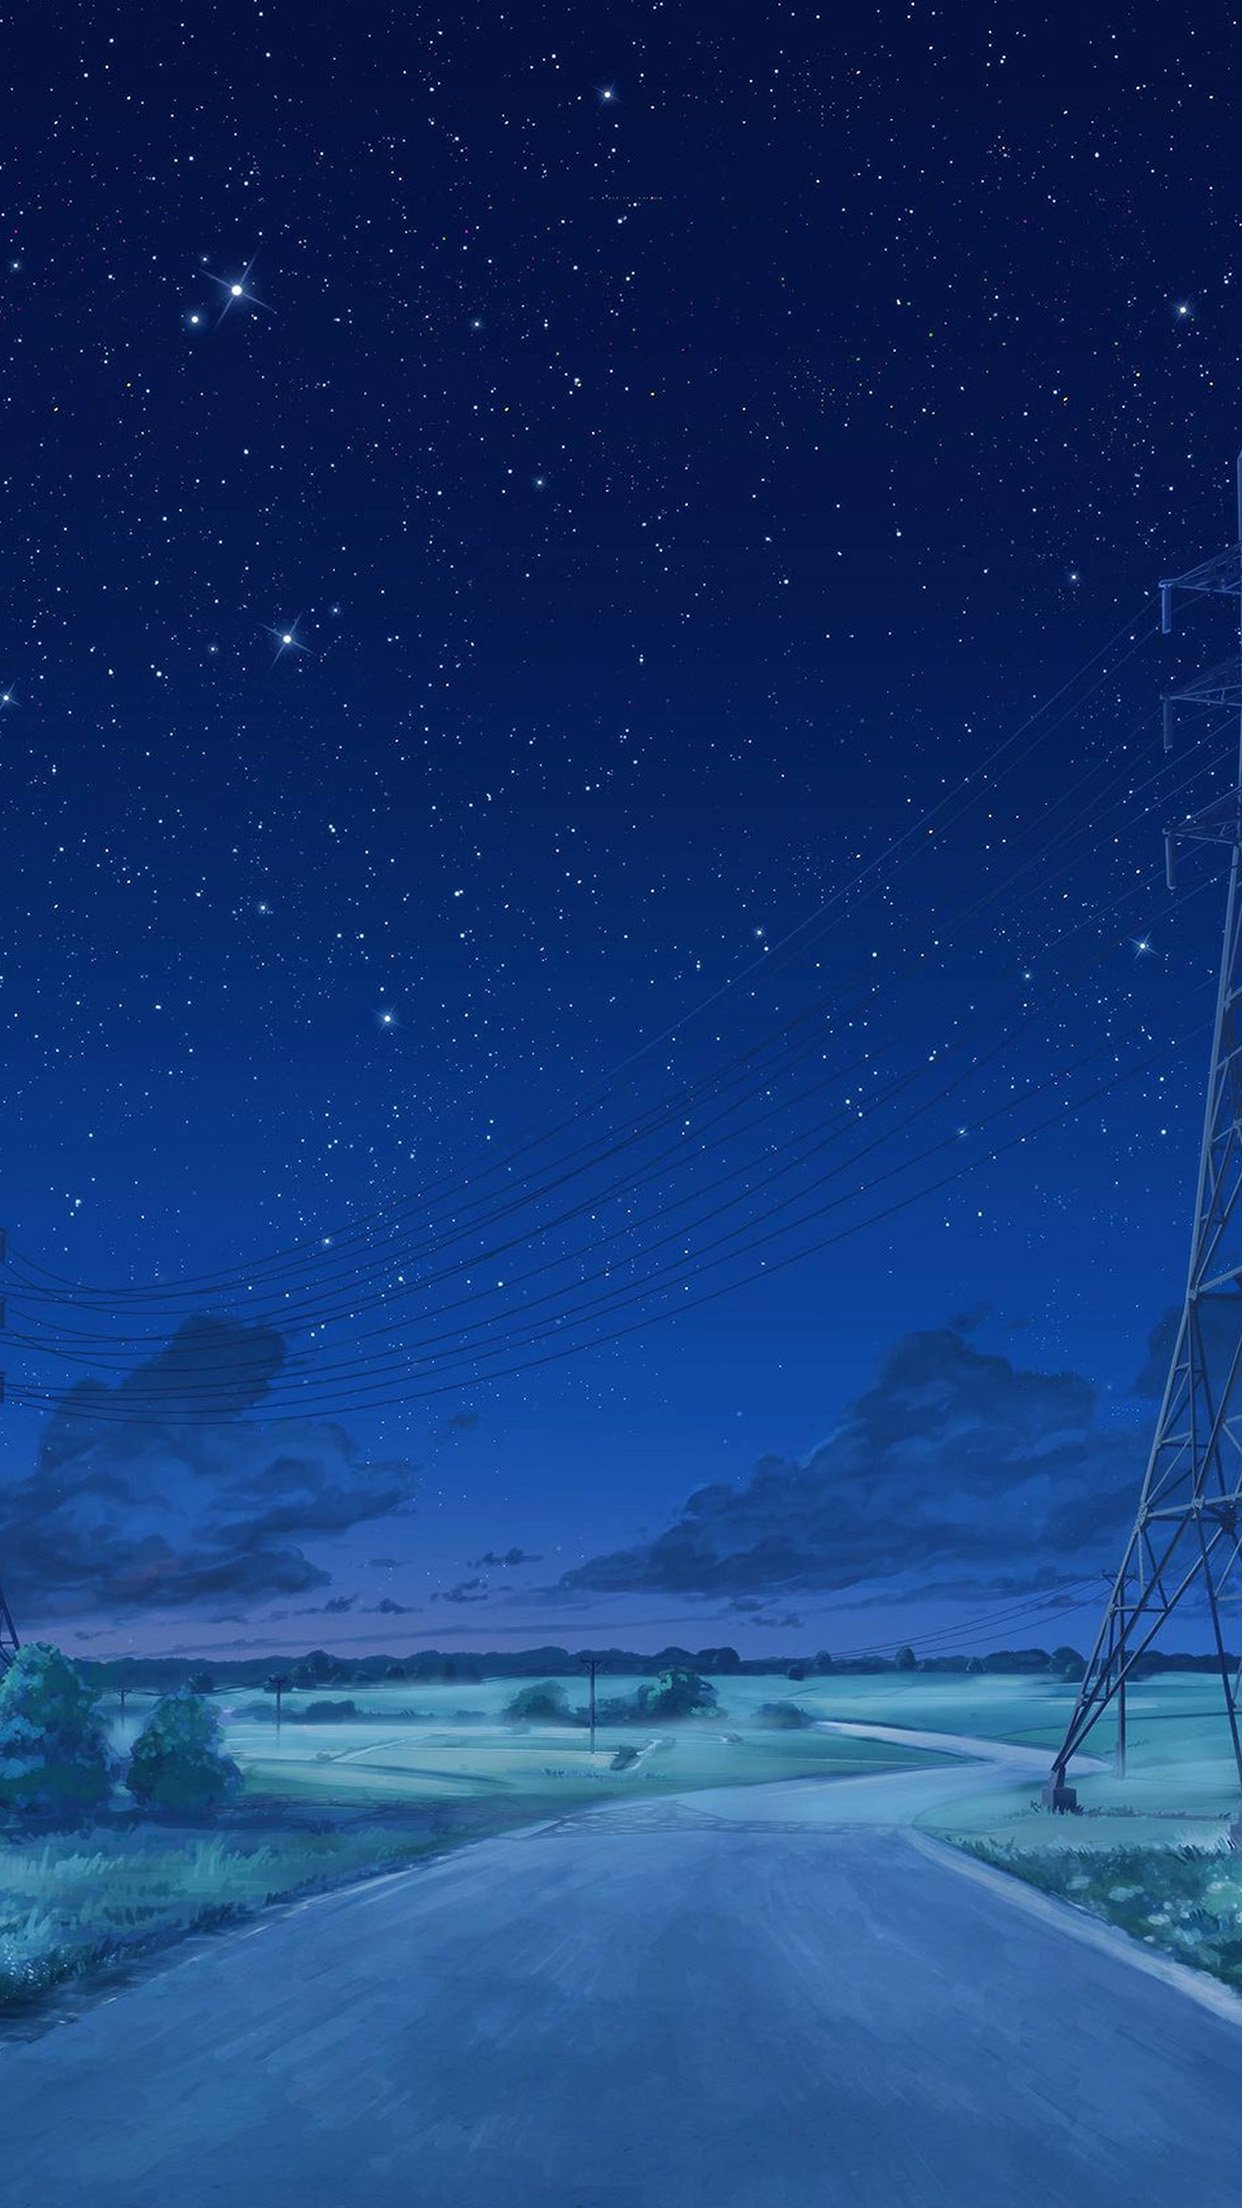 arseniy chebynkin night sky star blue illustration art anime android wallpaper android hd wallpapers